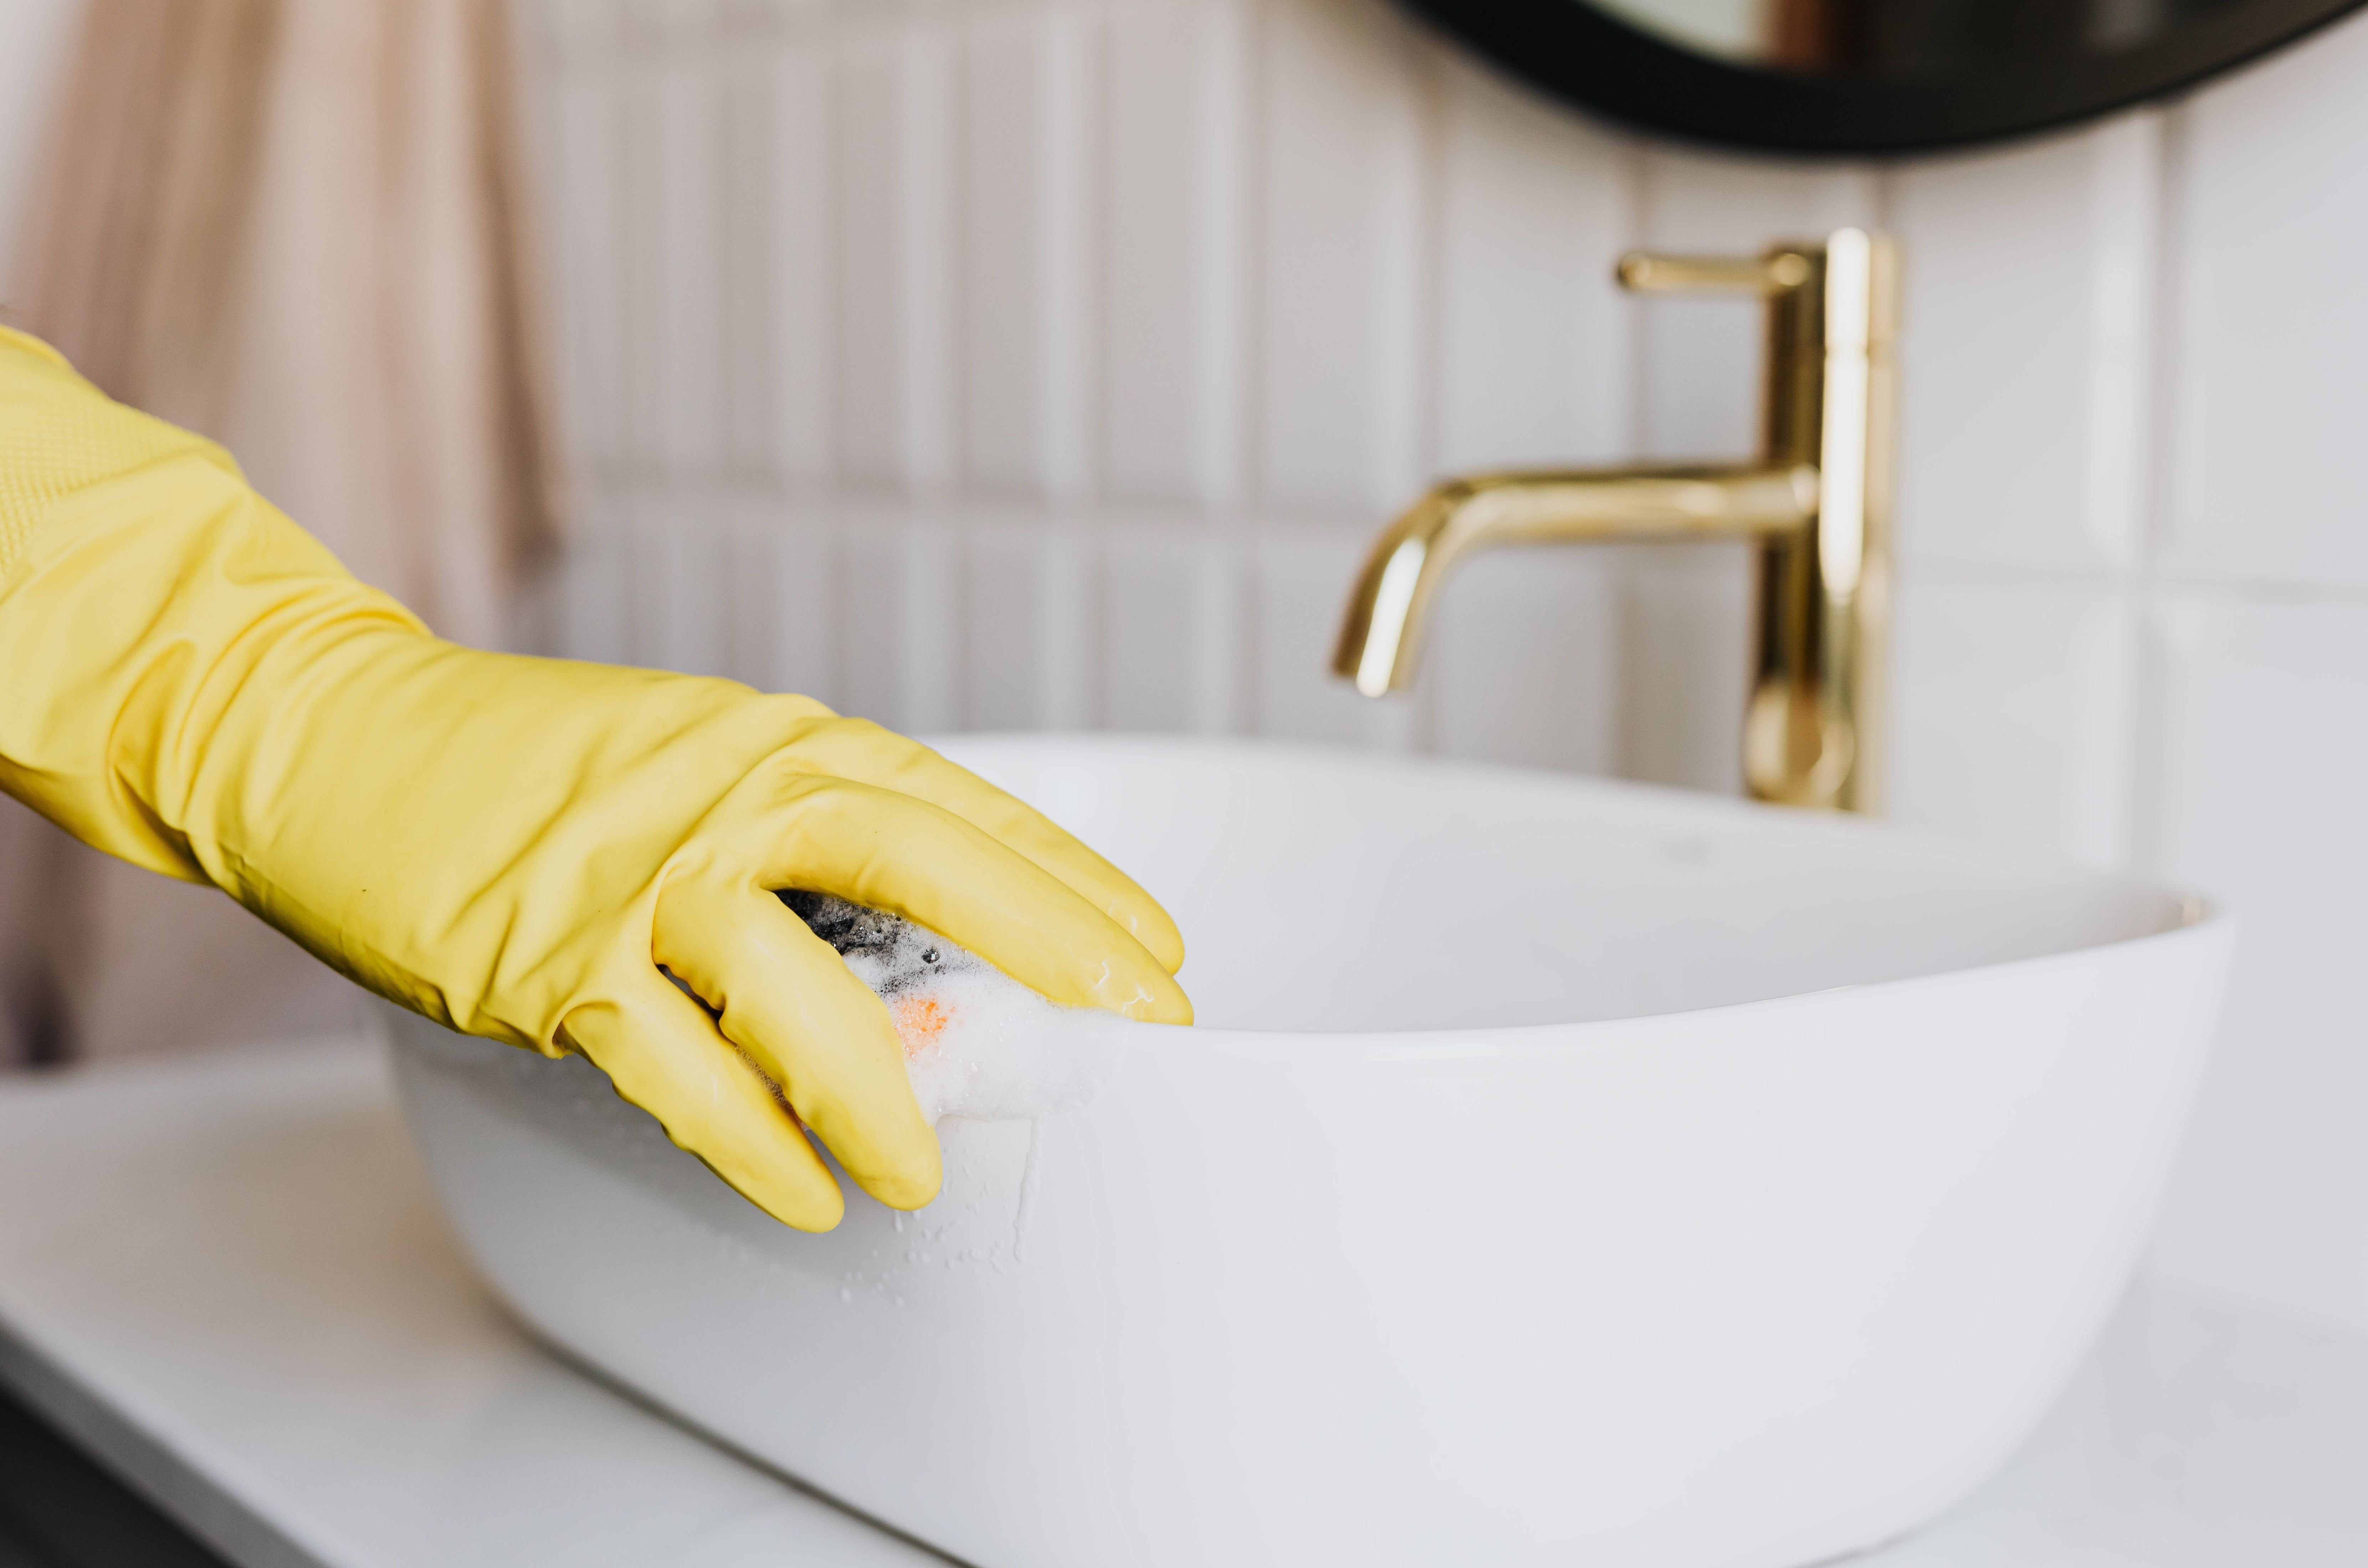 The 45-Second Trick For Cleaning Services In Amsterdam